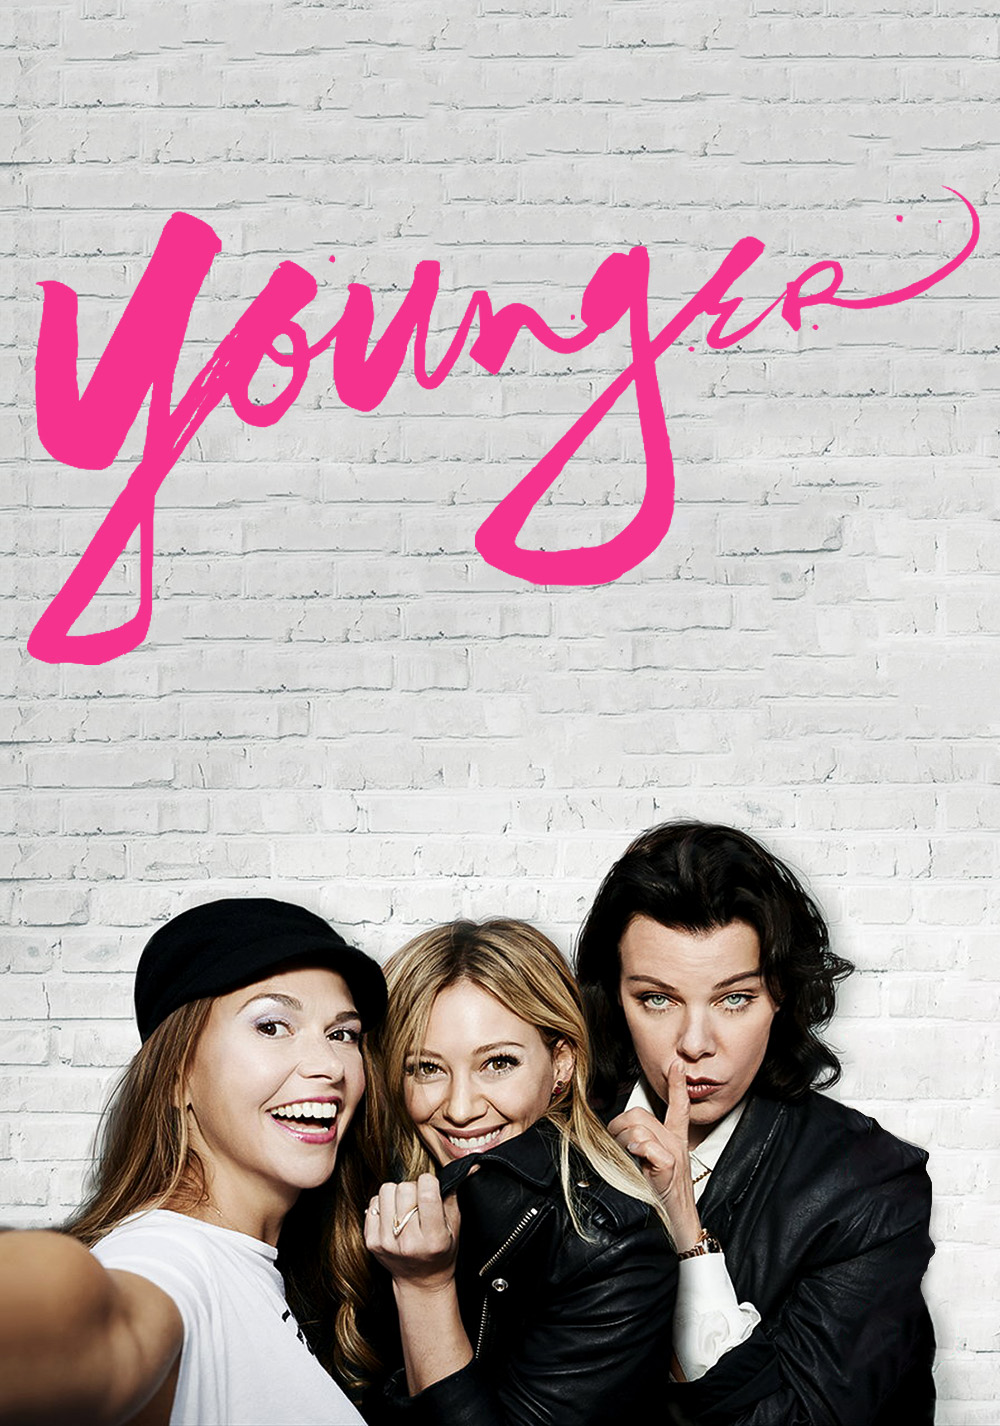 YOUNGER SEASON 4 (TVLAND) - IMAGE CAMPAIGN CONCEPTS